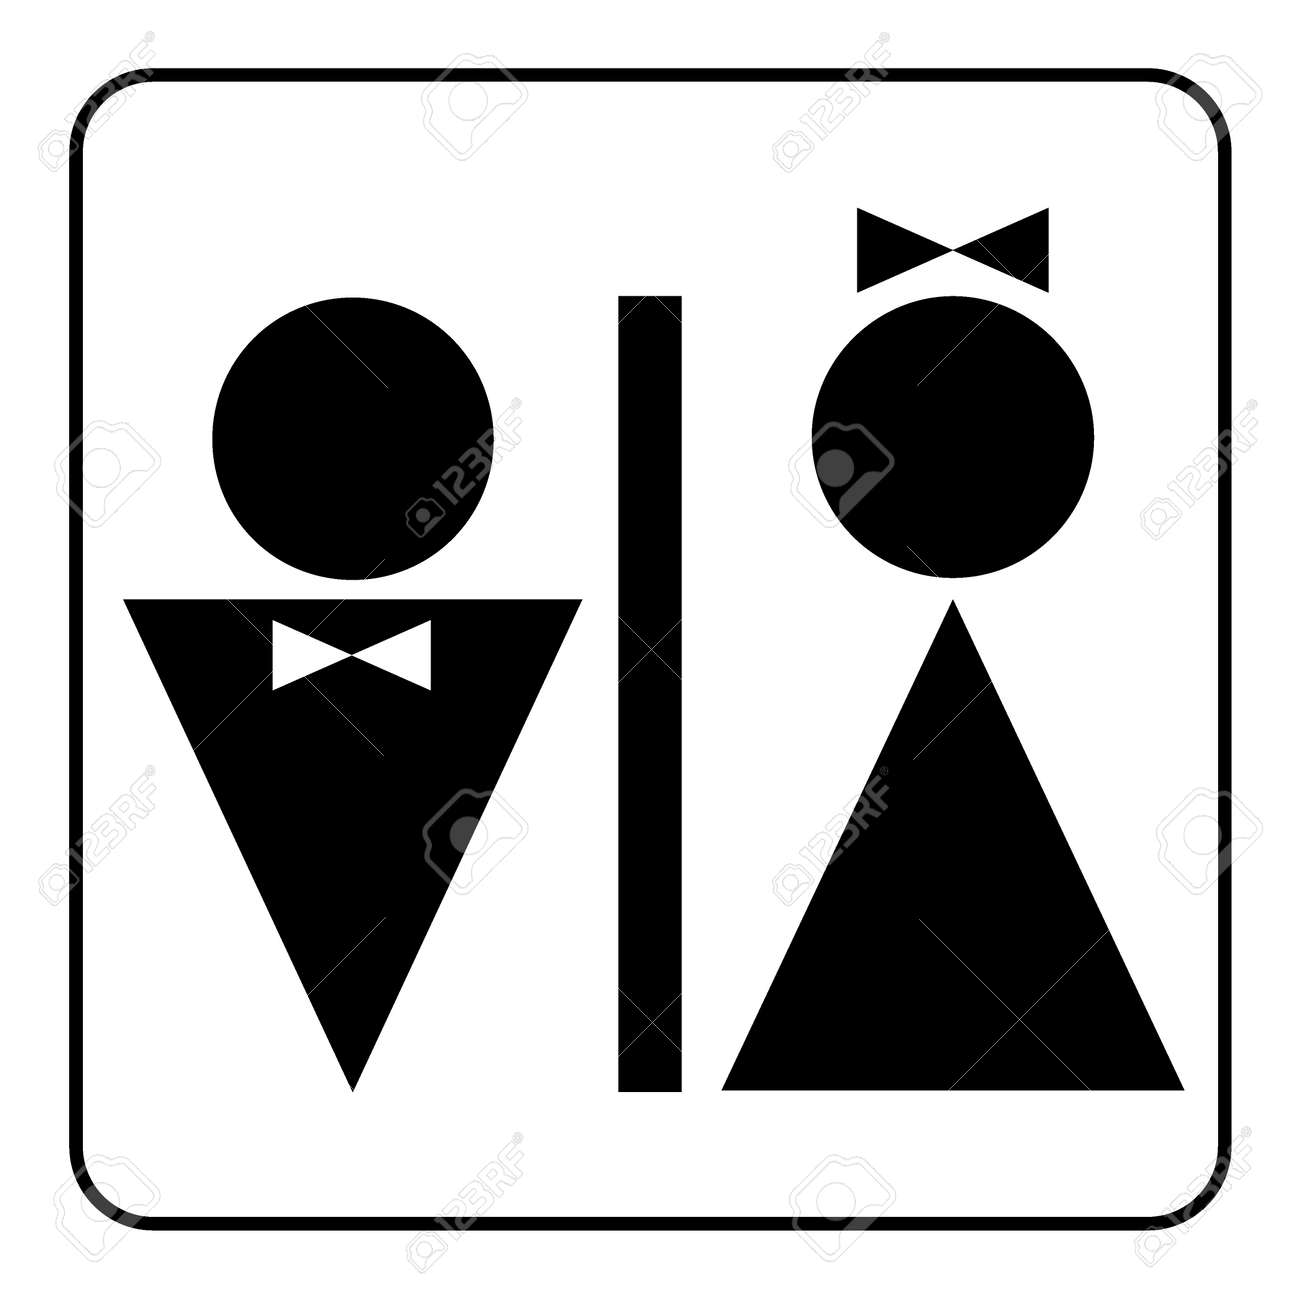 Restroom Sign Male And Female Toilet Icon Denoting Facilities For Both Men Women